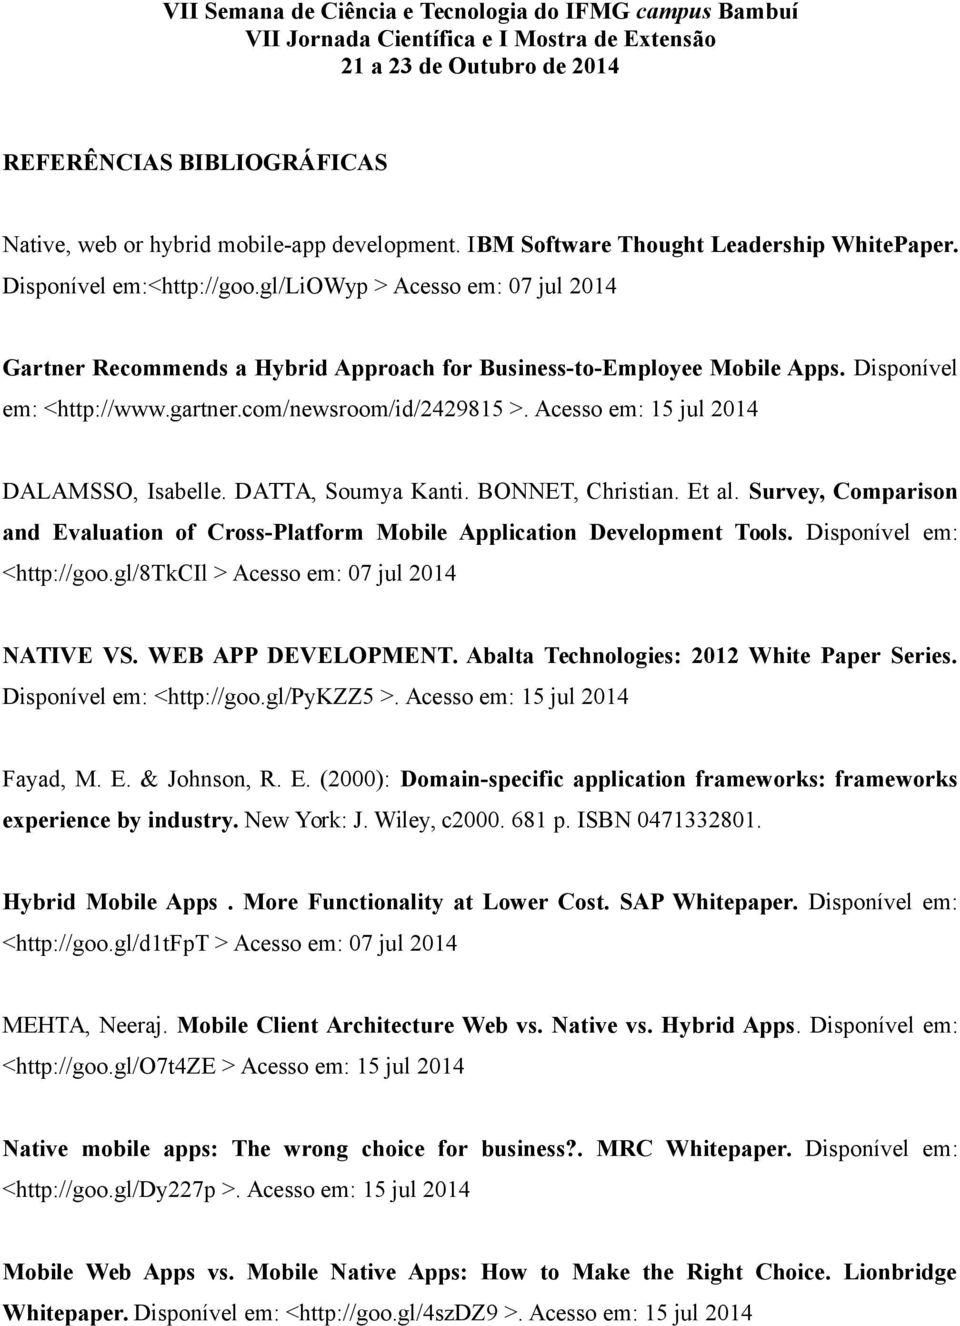 Acesso em: 15 jul 2014 DALAMSSO, Isabelle. DATTA, Soumya Kanti. BONNET, Christian. Et al. Survey, Comparison and Evaluation of Cross-Platform Mobile Application Development Tools.